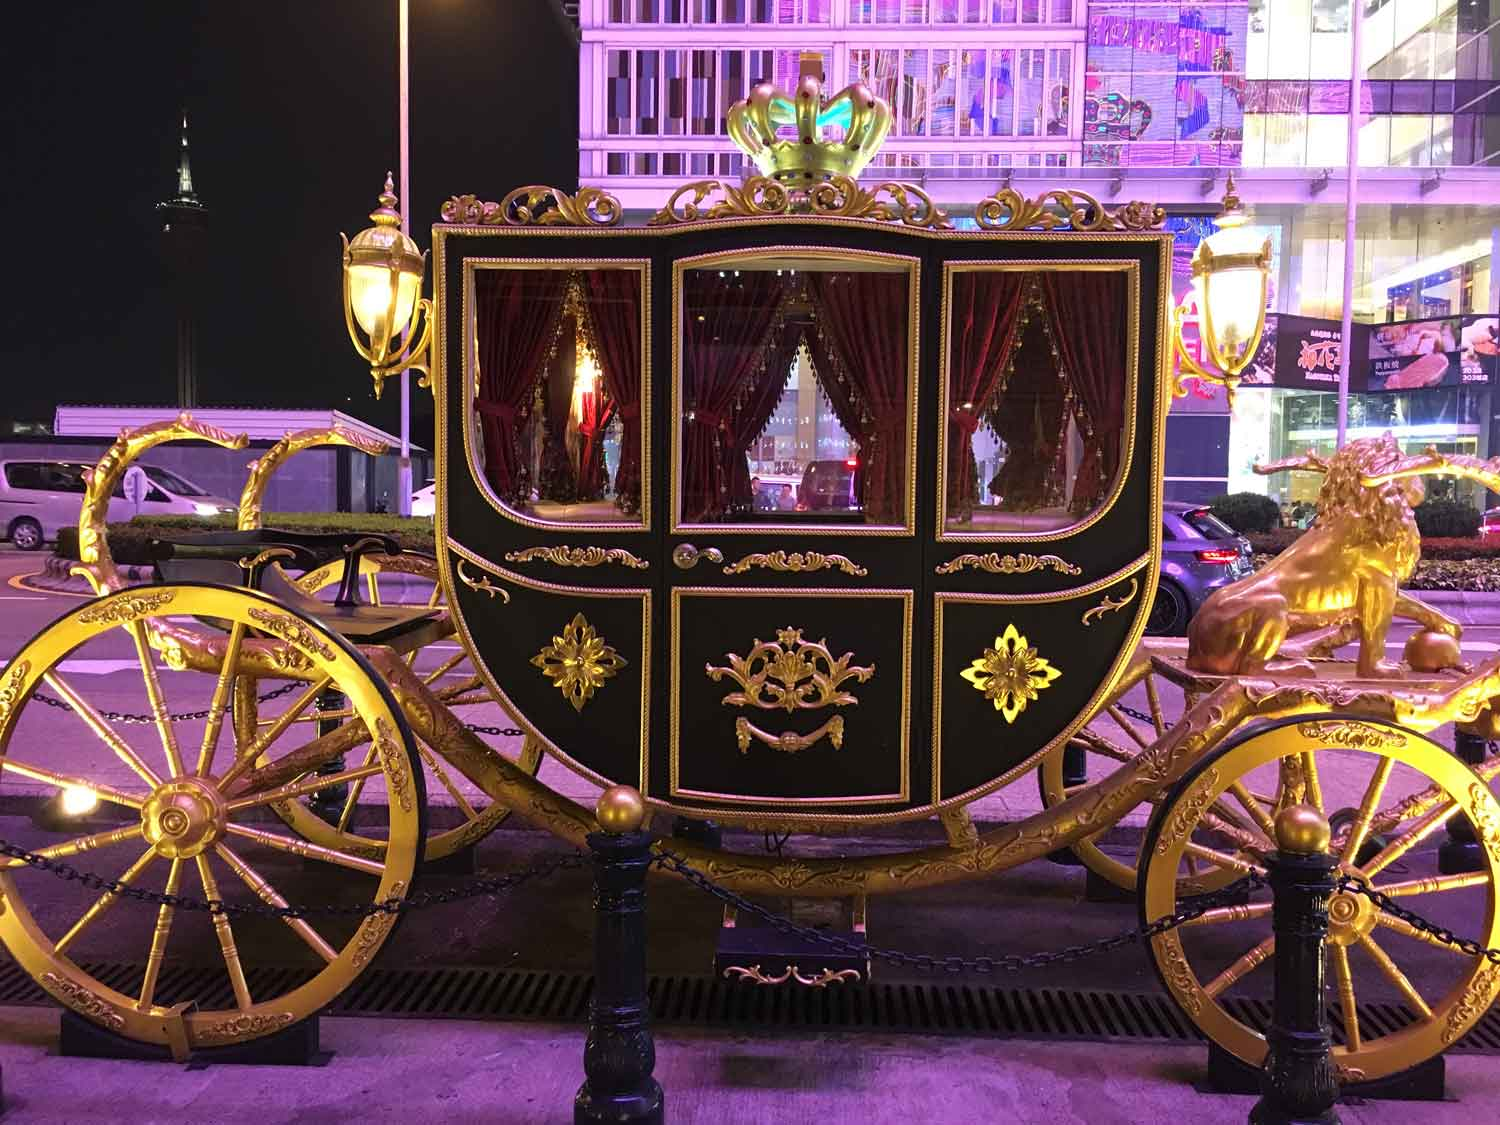 Grand Emperor Hotel gold carriage